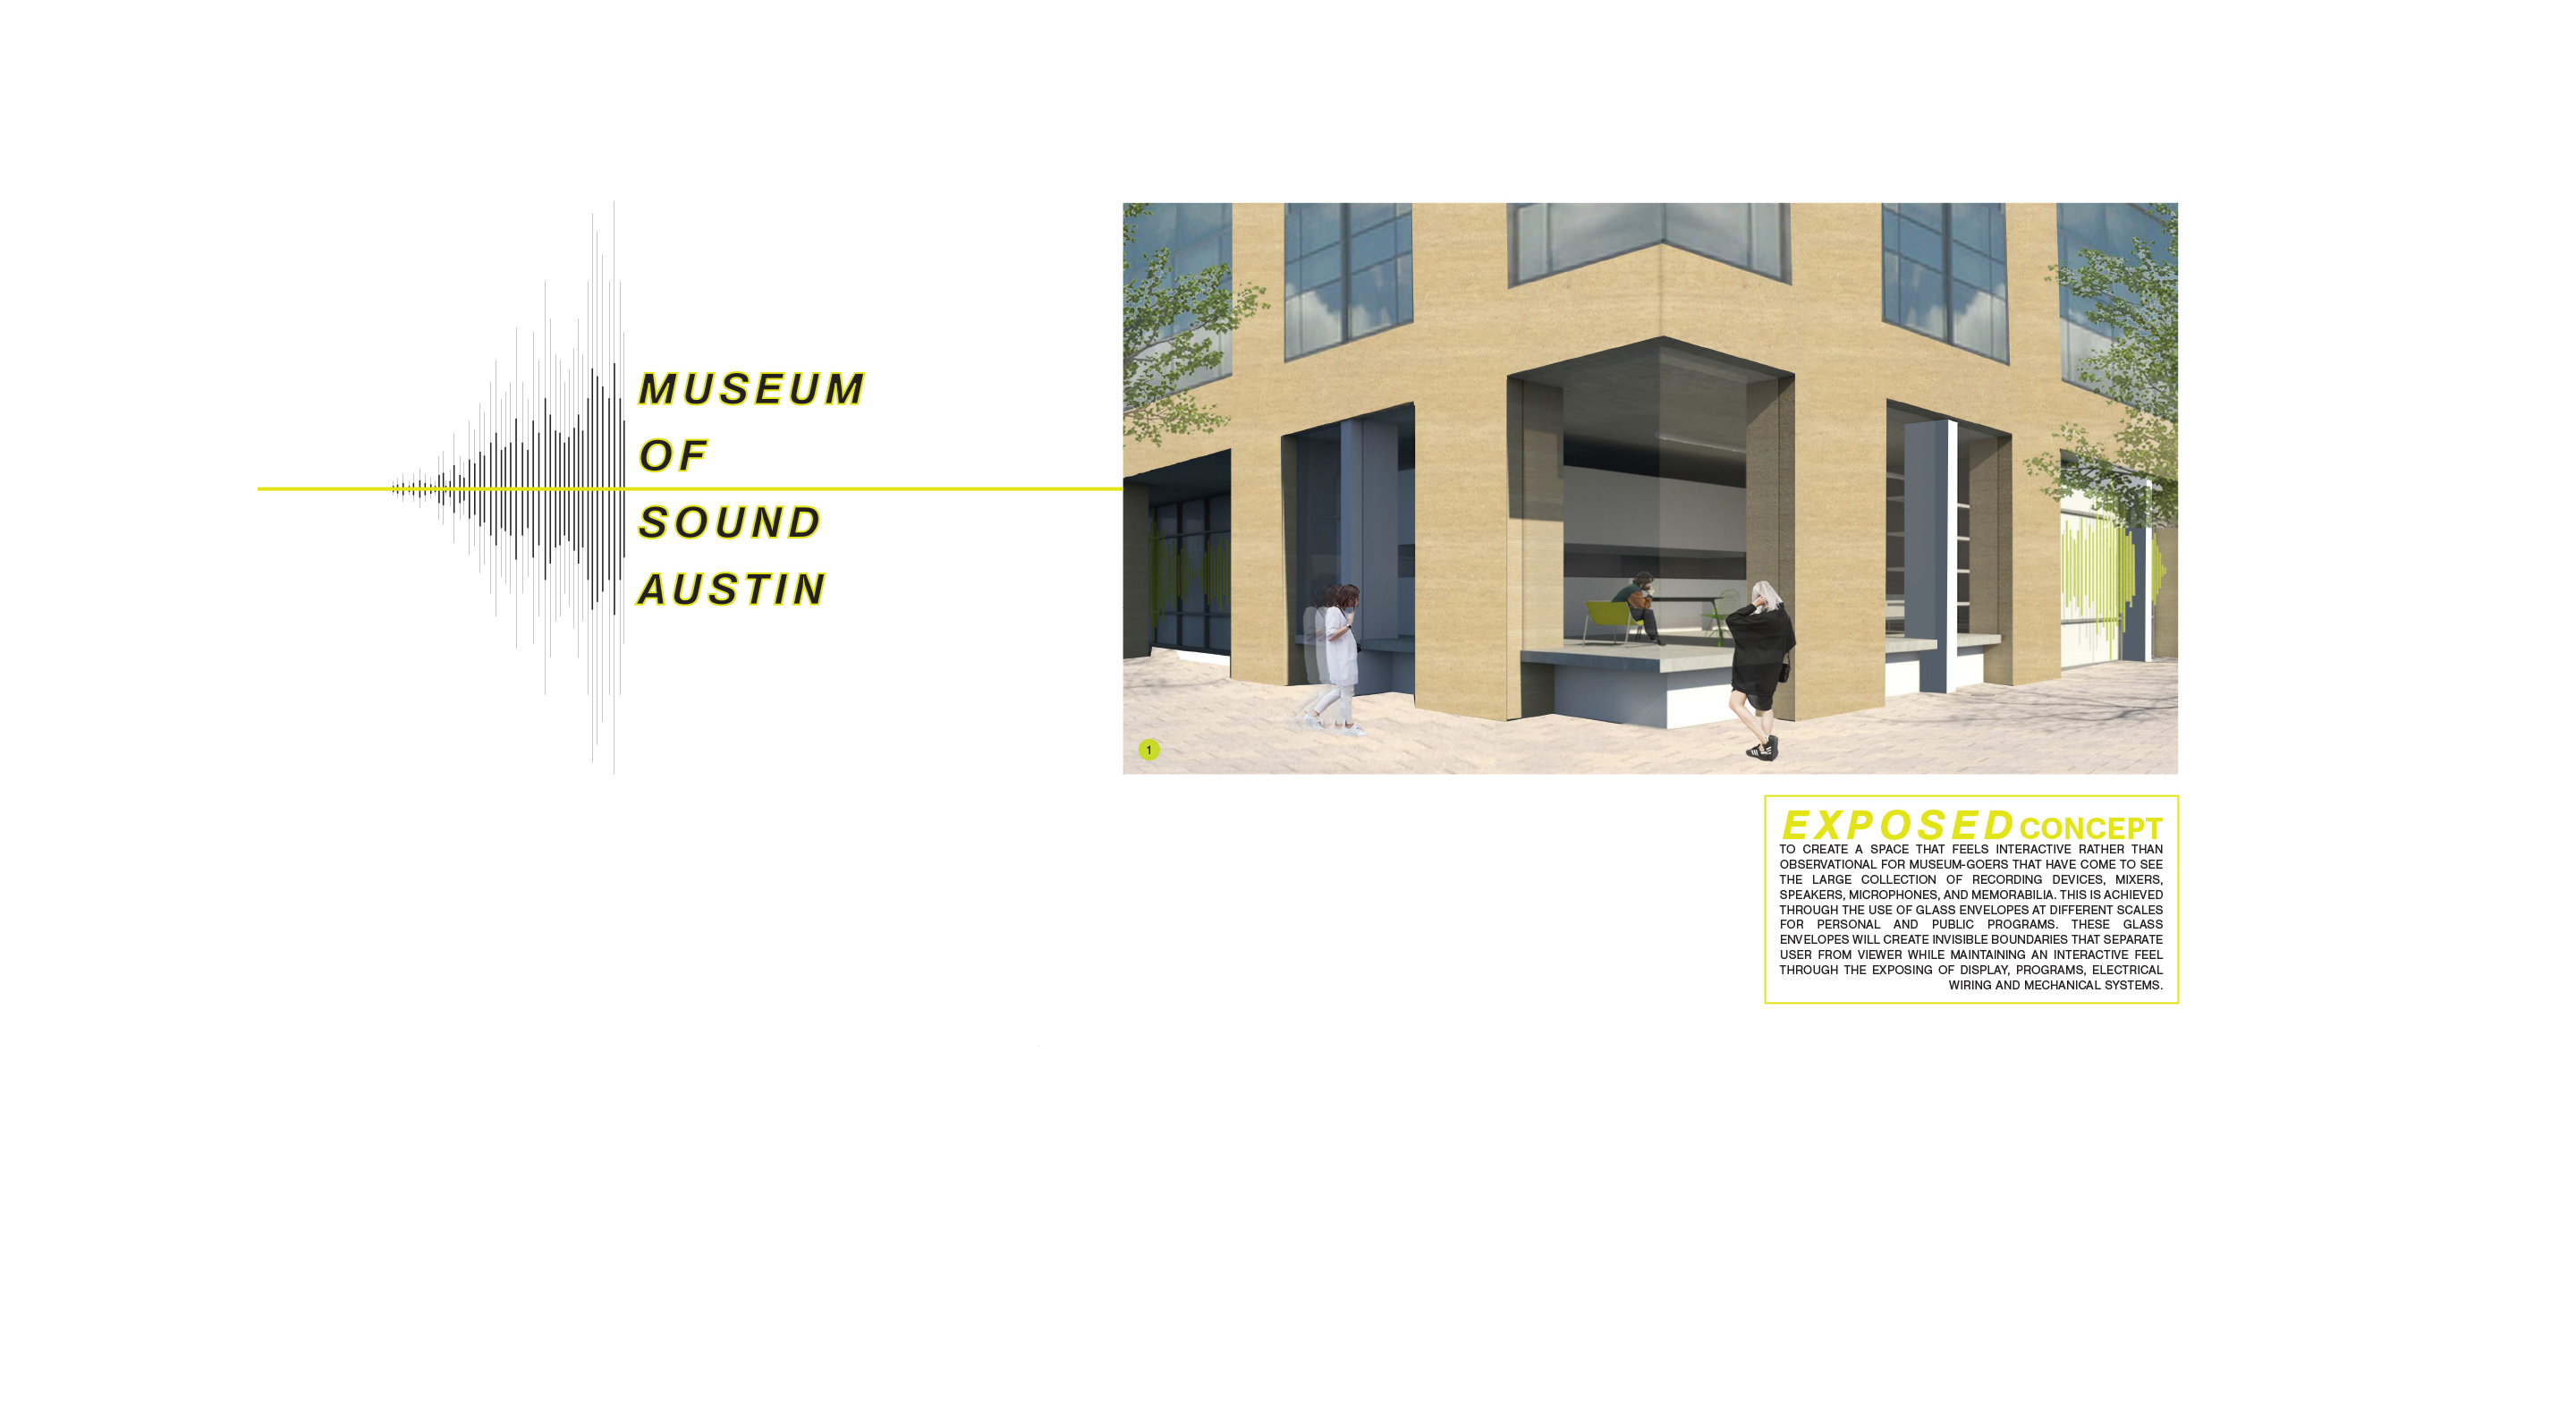 Image of Museum of Sound Austin, interior design project by Raquel Torres.